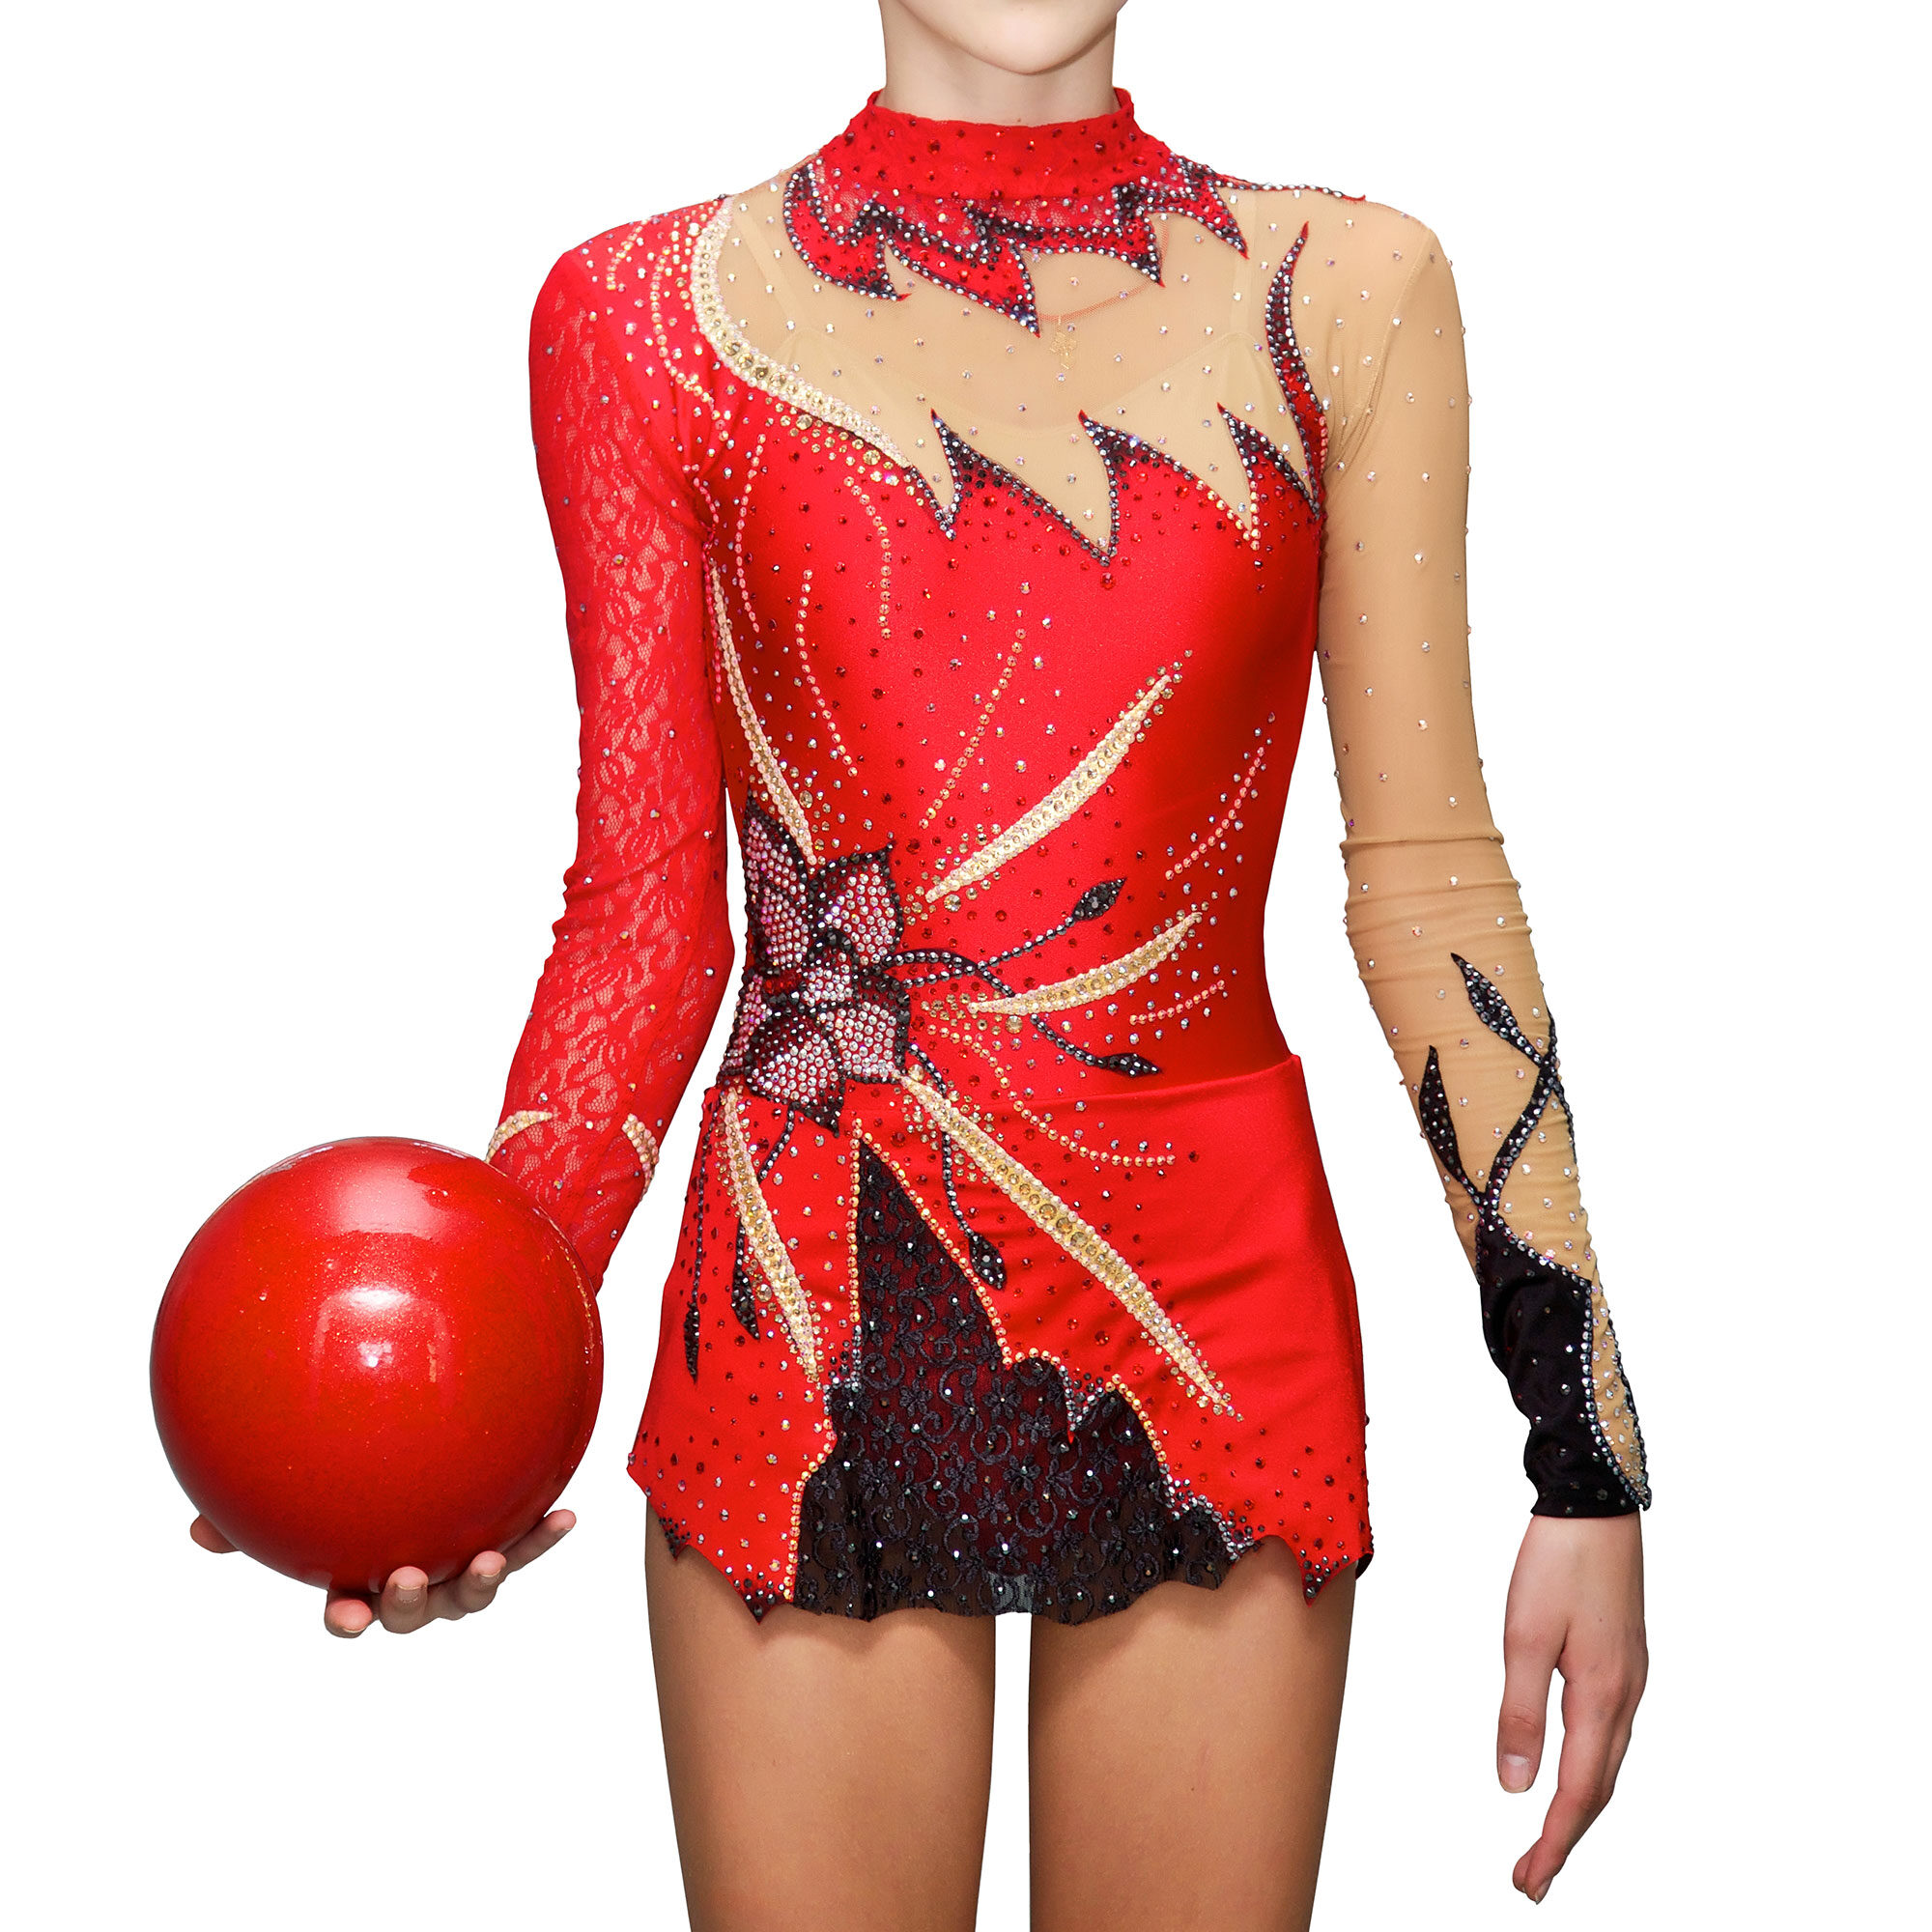 Rhythmic Gymnastics Leotard № 27 could be sewn as Dress Rhythmic Gymnastics, Ice Figure Skating Dress, Costume Acrobatic Gymnastics, Baton Twirling or Dance Leotard Suit. Decorated with stand-up collar, large flower applications and lace on the skirt and sleeves